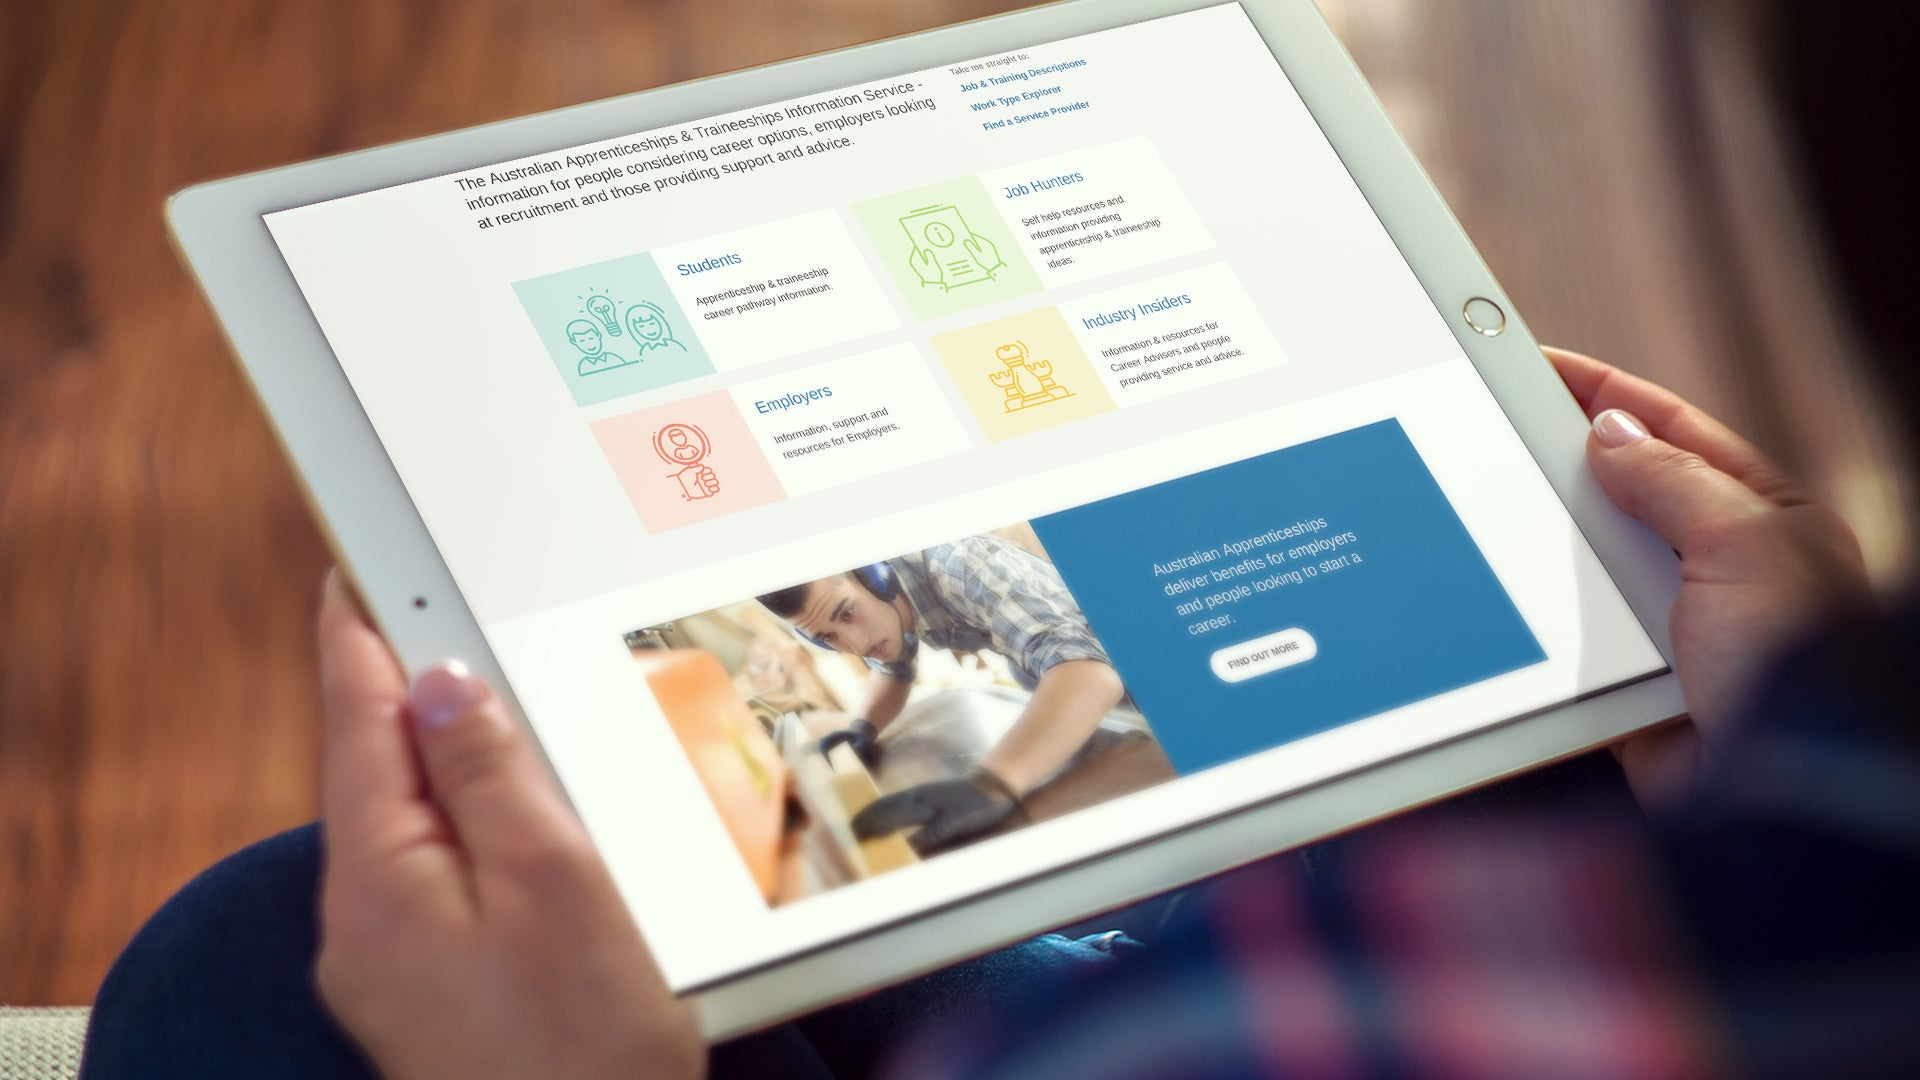 Australian Apprenticeship Pathways website on a tablet device